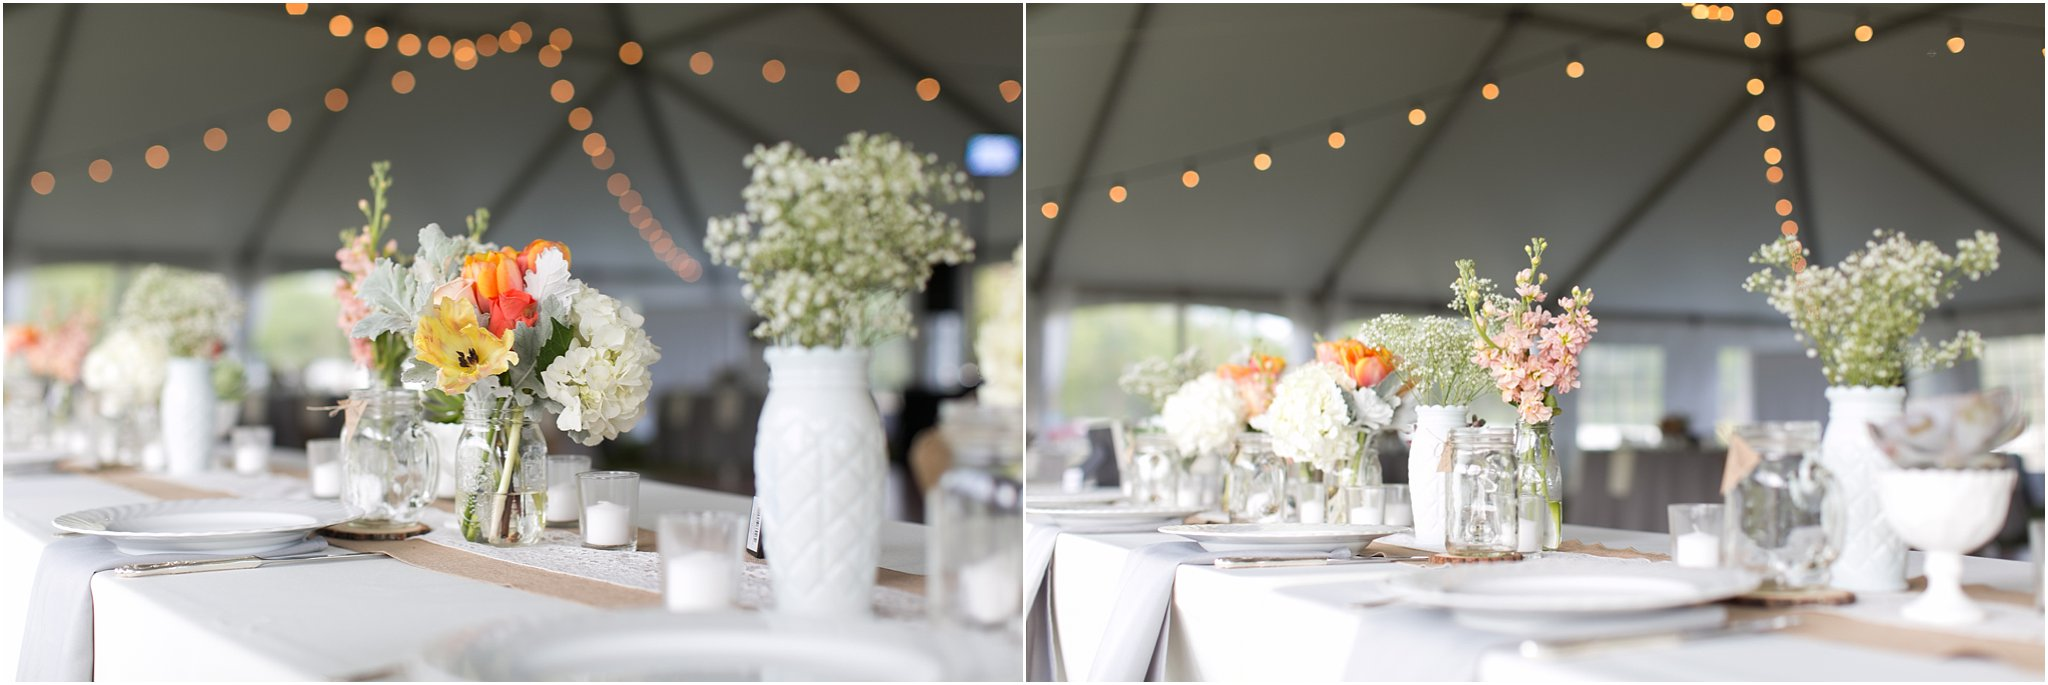 jessica_ryan_photography_holly_ridge_manor_wedding_roost_flowers_jamie_leigh_events_dhalia_edwards_candid_vibrant_wedding_colors_1351